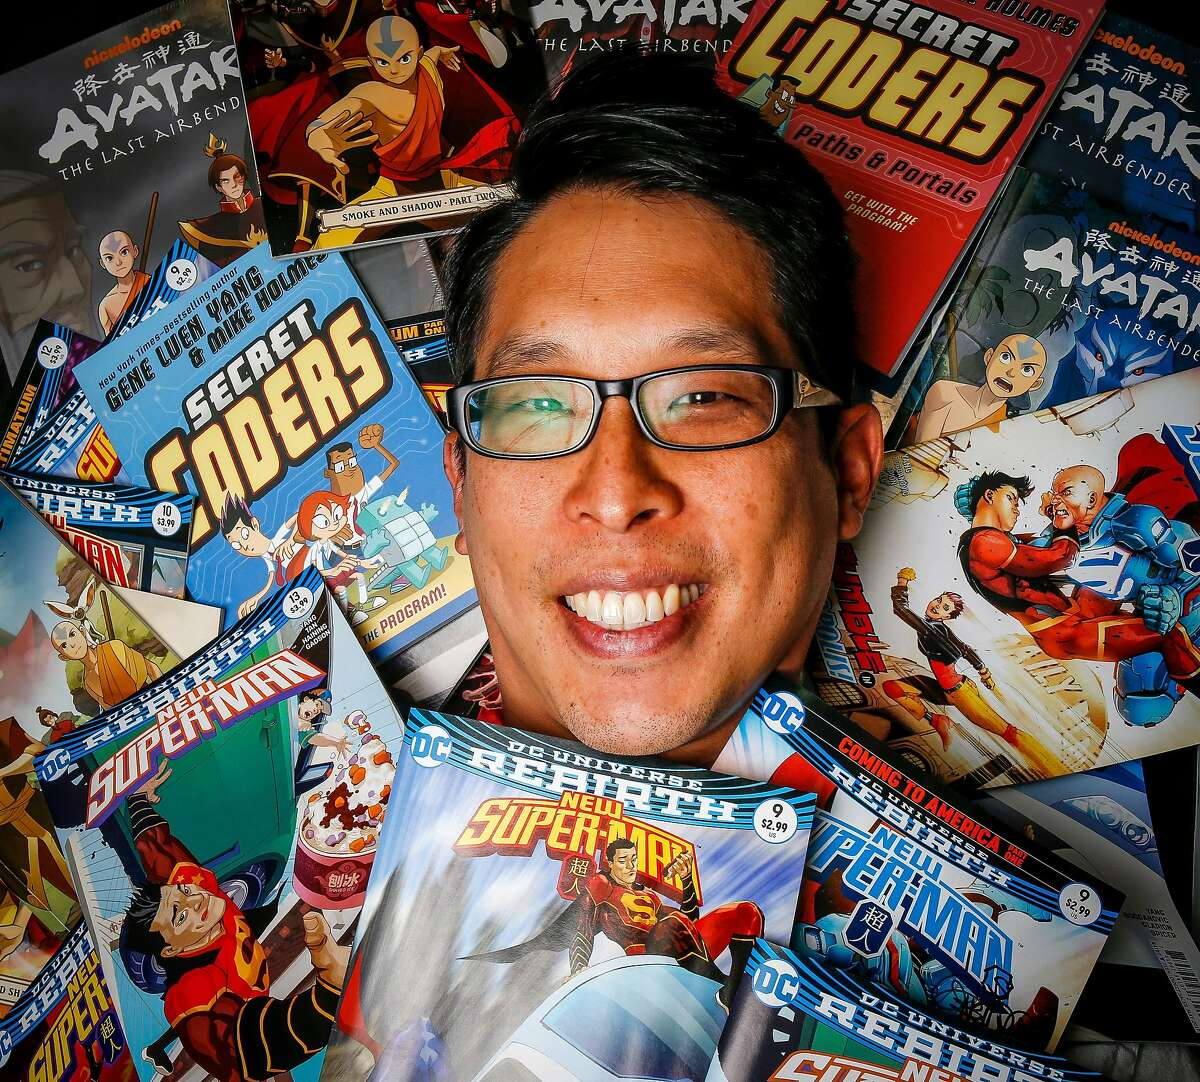 Gene Luen Yang poses for a portrait at Illusive Comics bookstore in Santa Clara, California, on Monday, Sept. 11, 2017. Gene Luen Yang is a Bay Area-based, award-winning author who has twice been nominated for the National Book Award for his graphic novels/comic books.